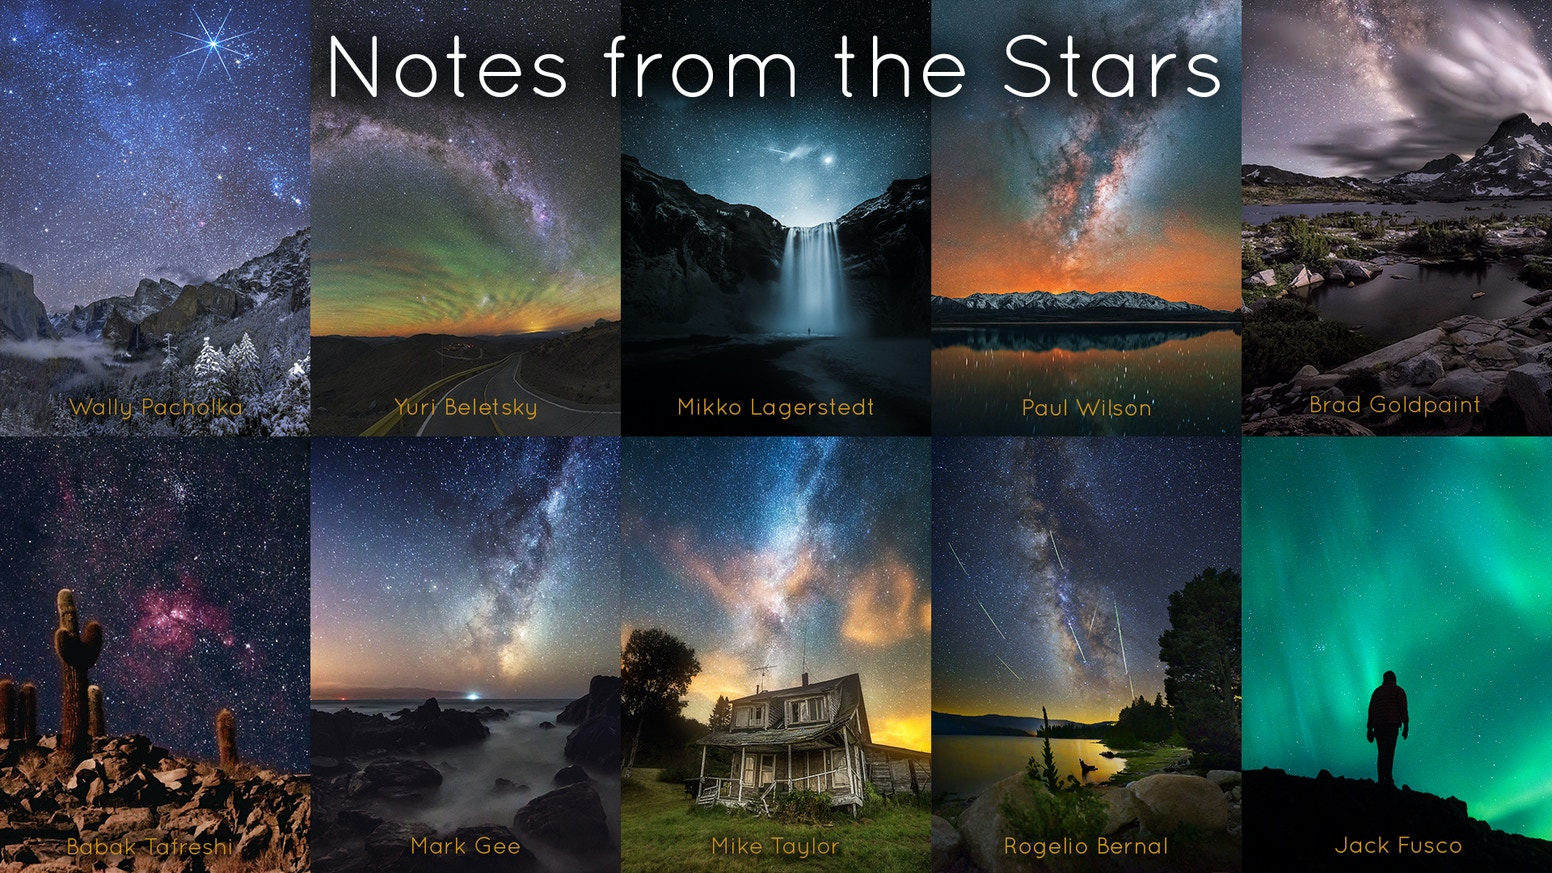 A high-quality hardcover book with ten night photography masterclasses, each written by a world-class, award-winning astrophotographer.